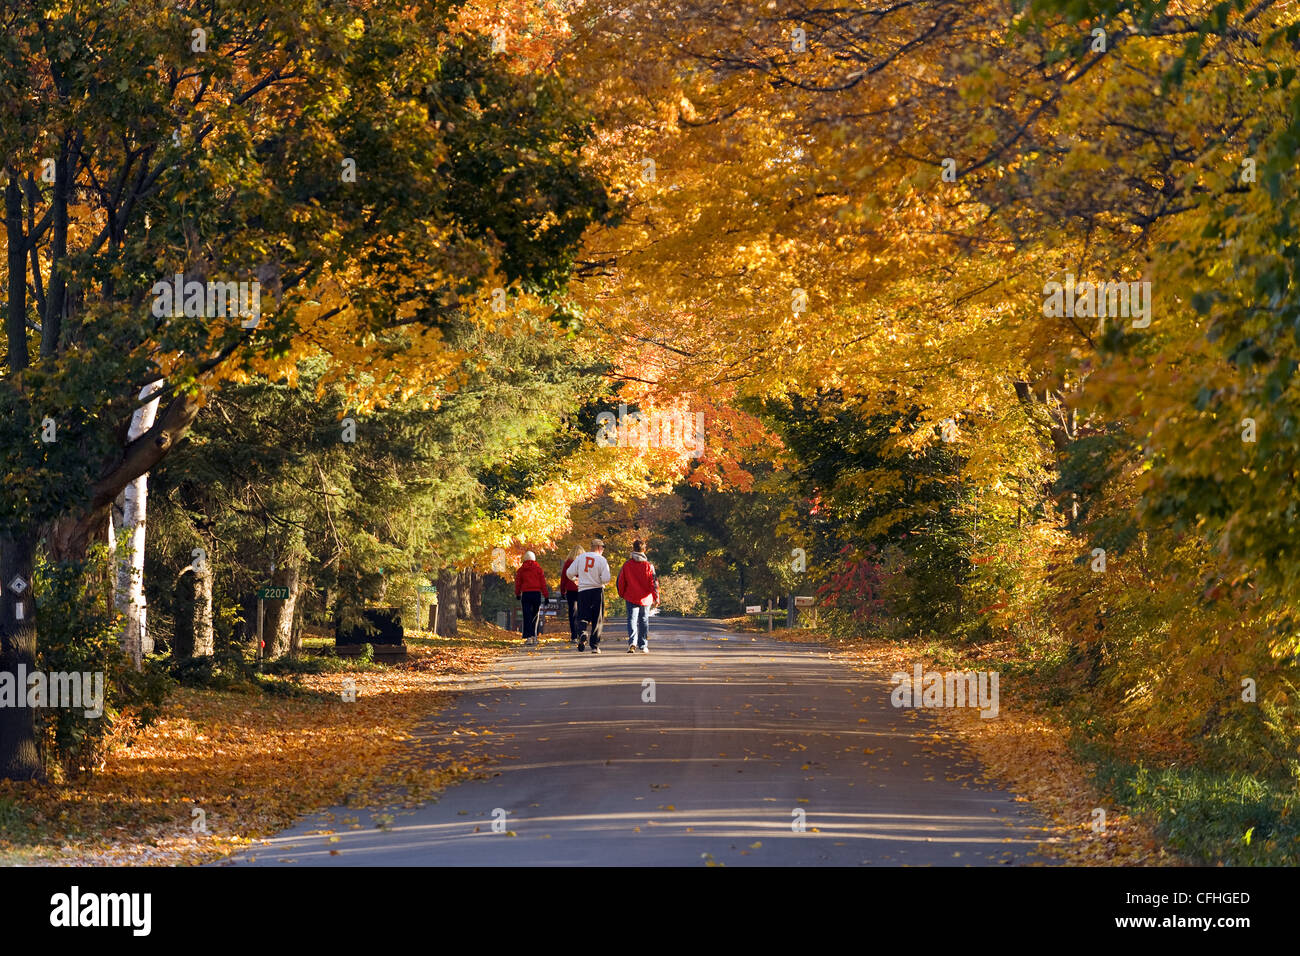 Walking under an autumn canopy - Stock Image